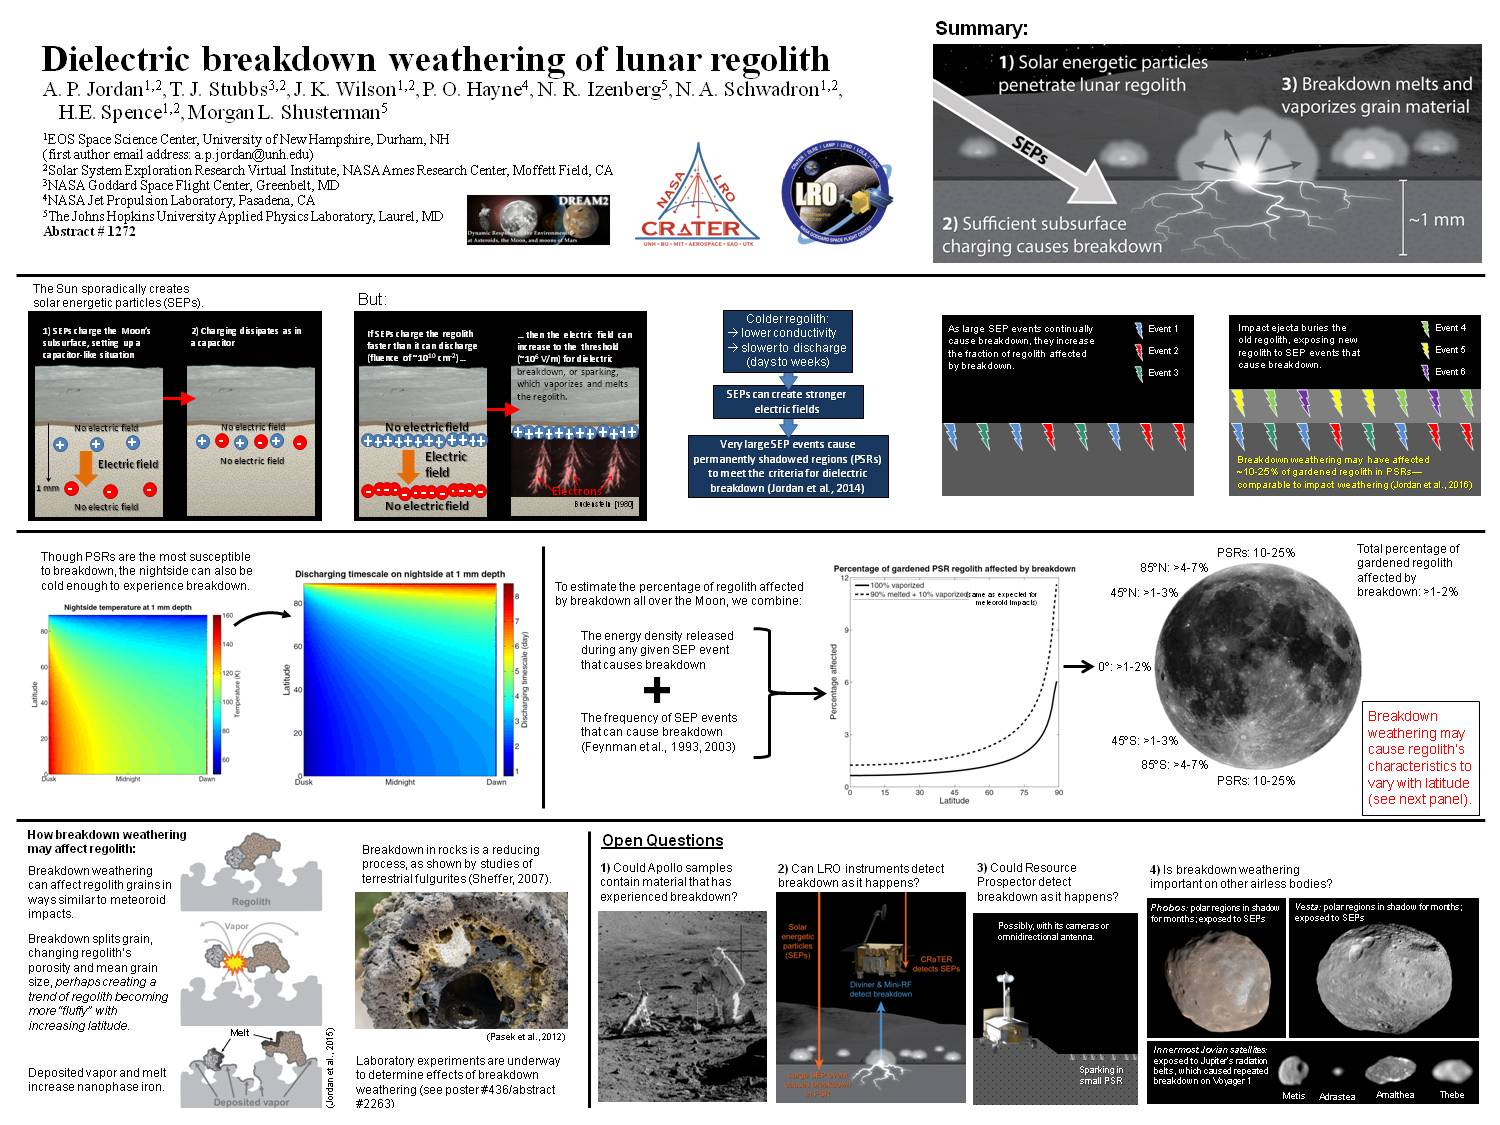 Dielectric Breakdown Weathering Of Lunar Regolith by api44